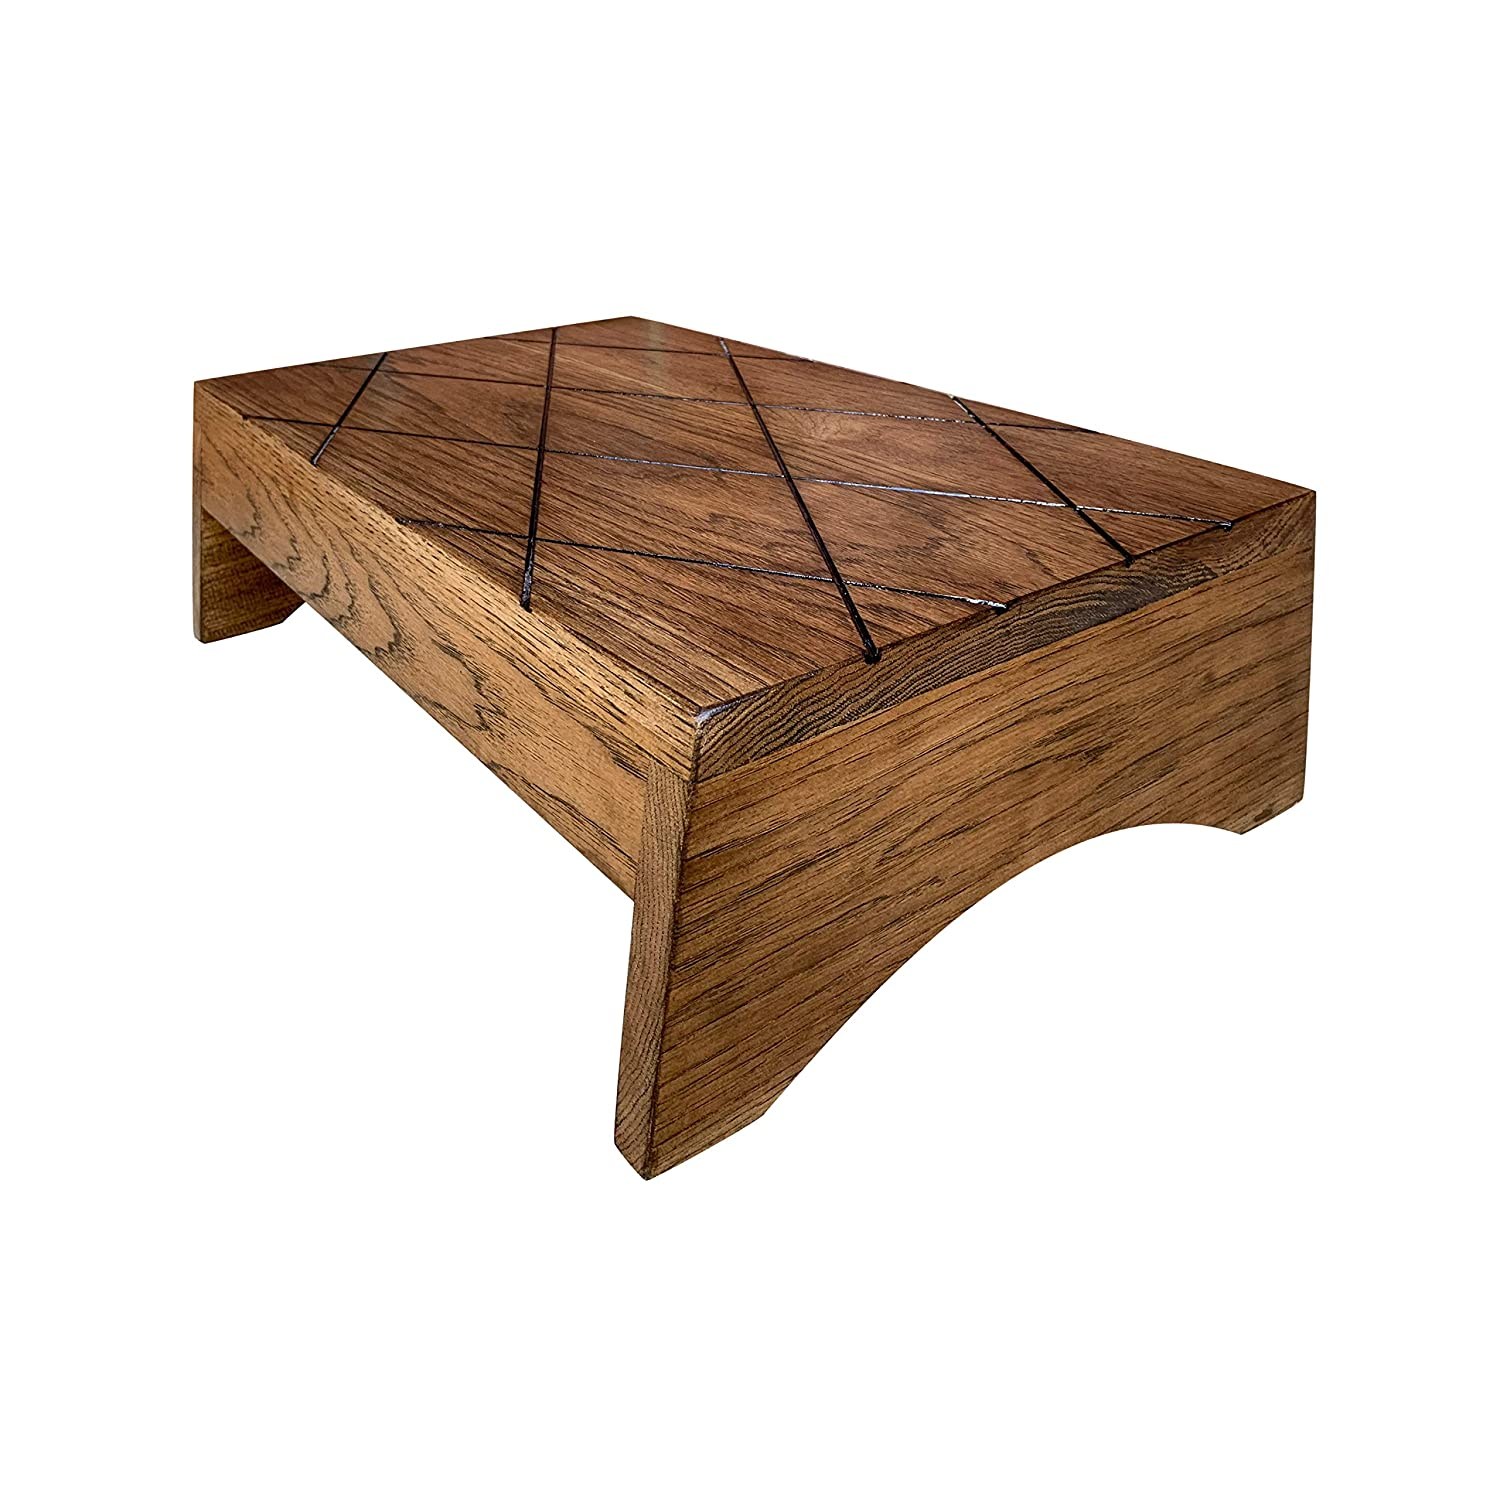 Marvelous Wood Step Stool Large By Cw Furniture Custom Choose Finish Handicapped Elderly Bed Solid Hardwood Kitchen Bathroom Personalized Engraved Foot Stool Machost Co Dining Chair Design Ideas Machostcouk